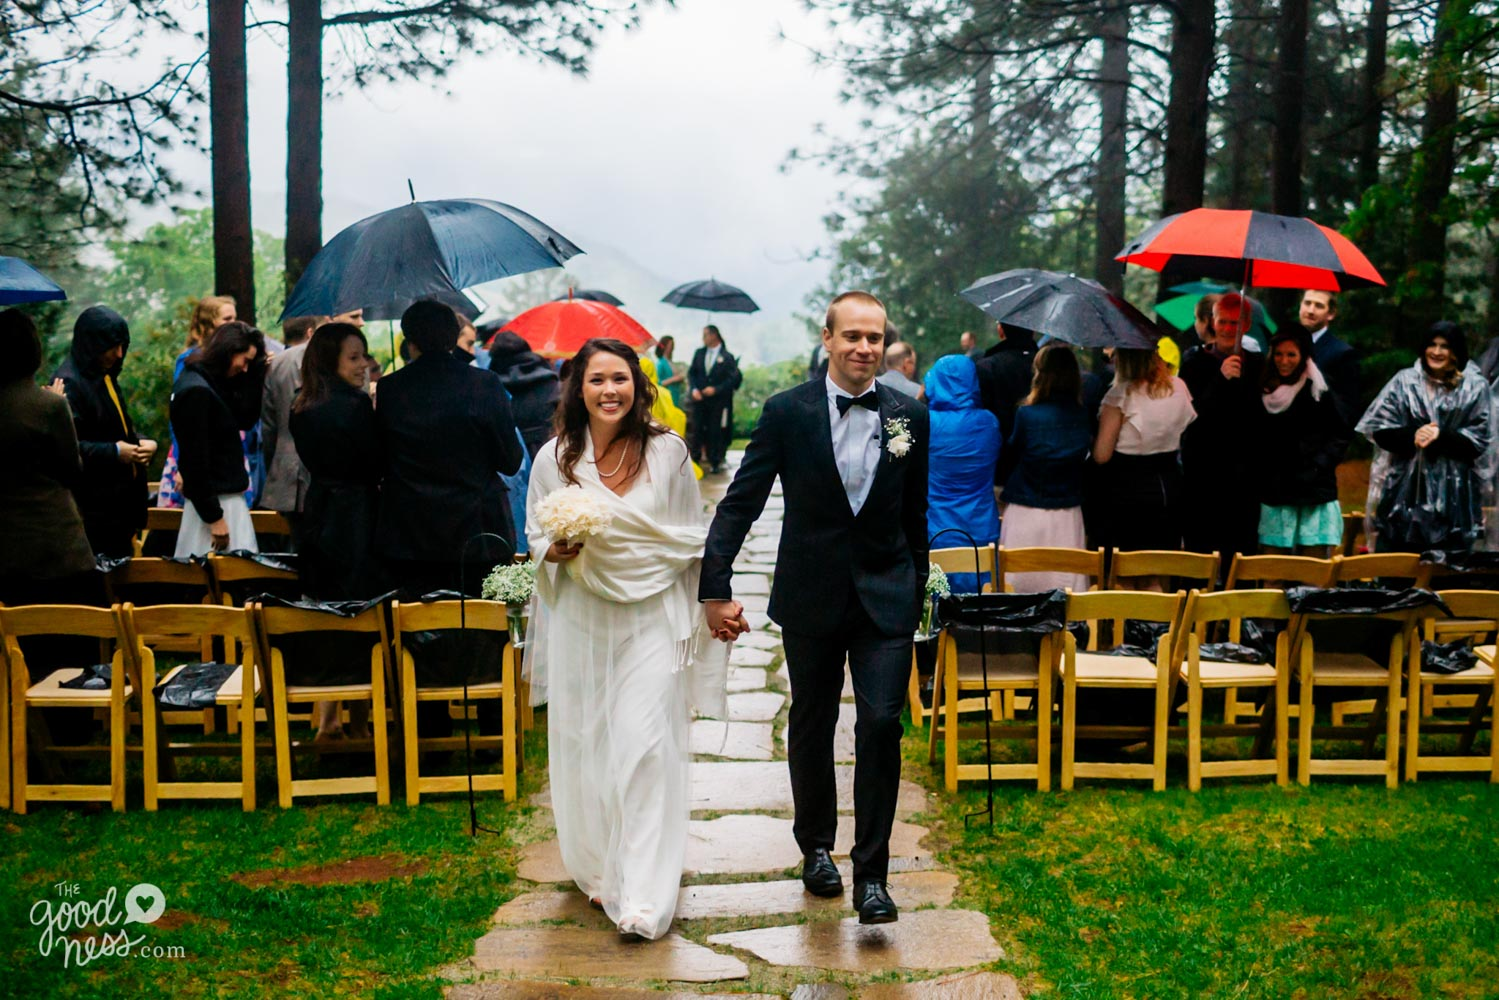 Smiling bride and groom walking up paved path while guests hold umbrellas and watch following rainy wedding ceremony at Foresthill, California.